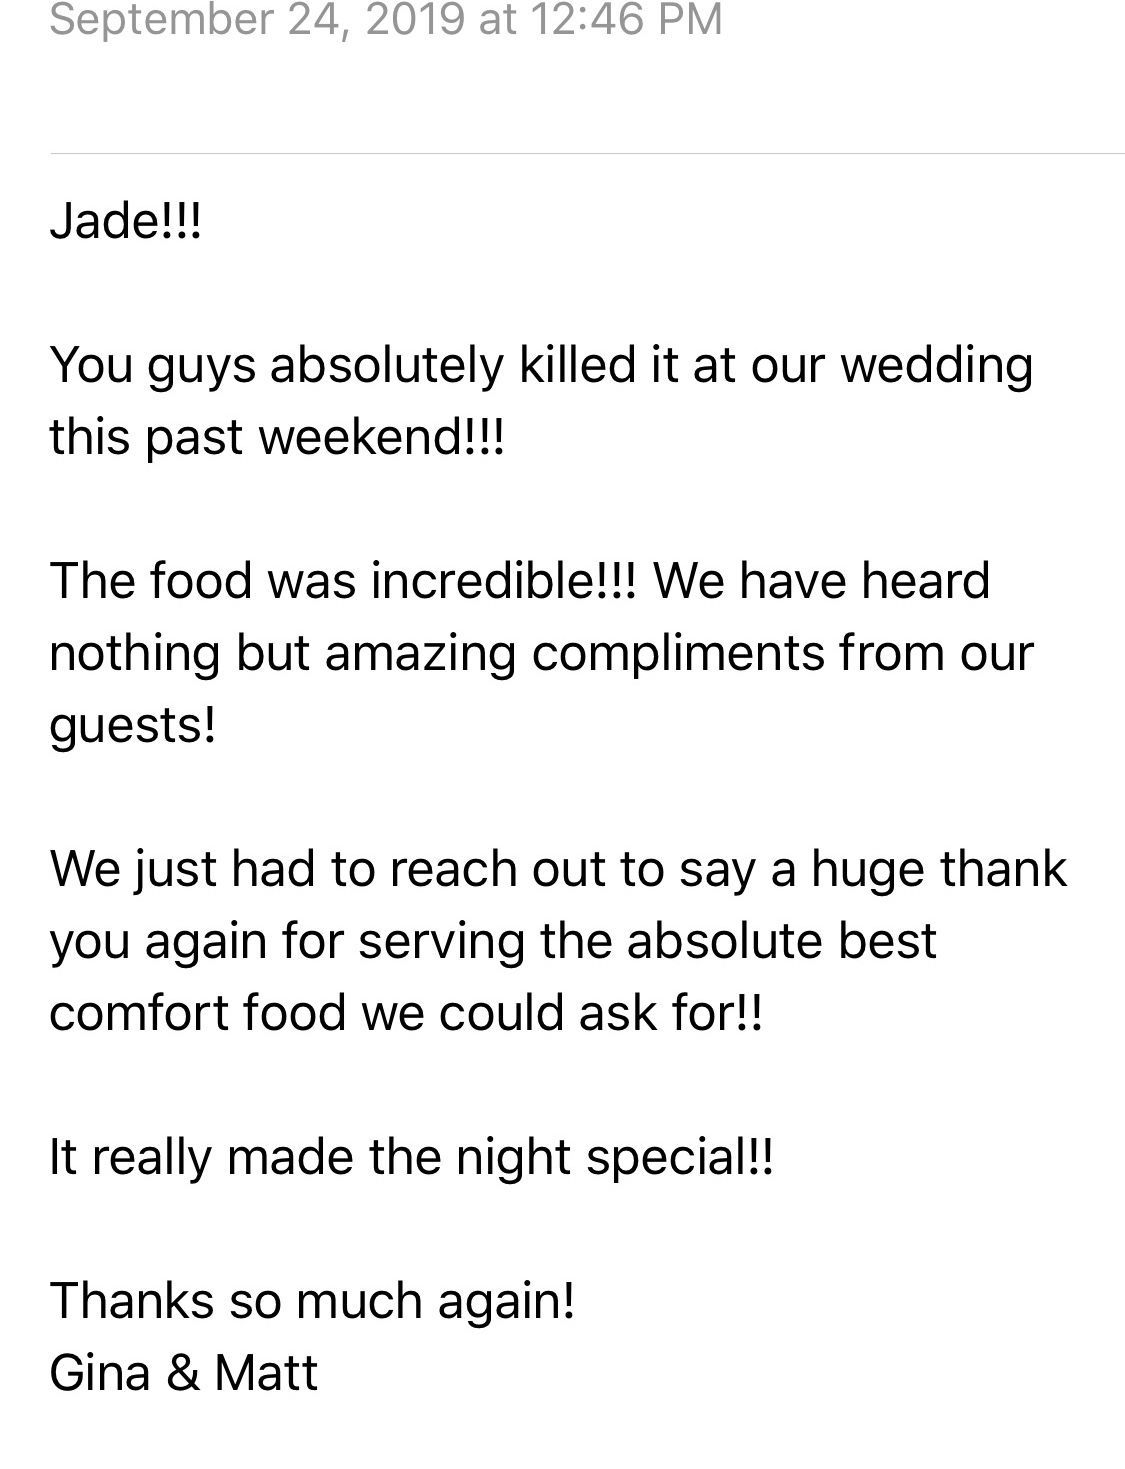 Wedding Catering - 2019